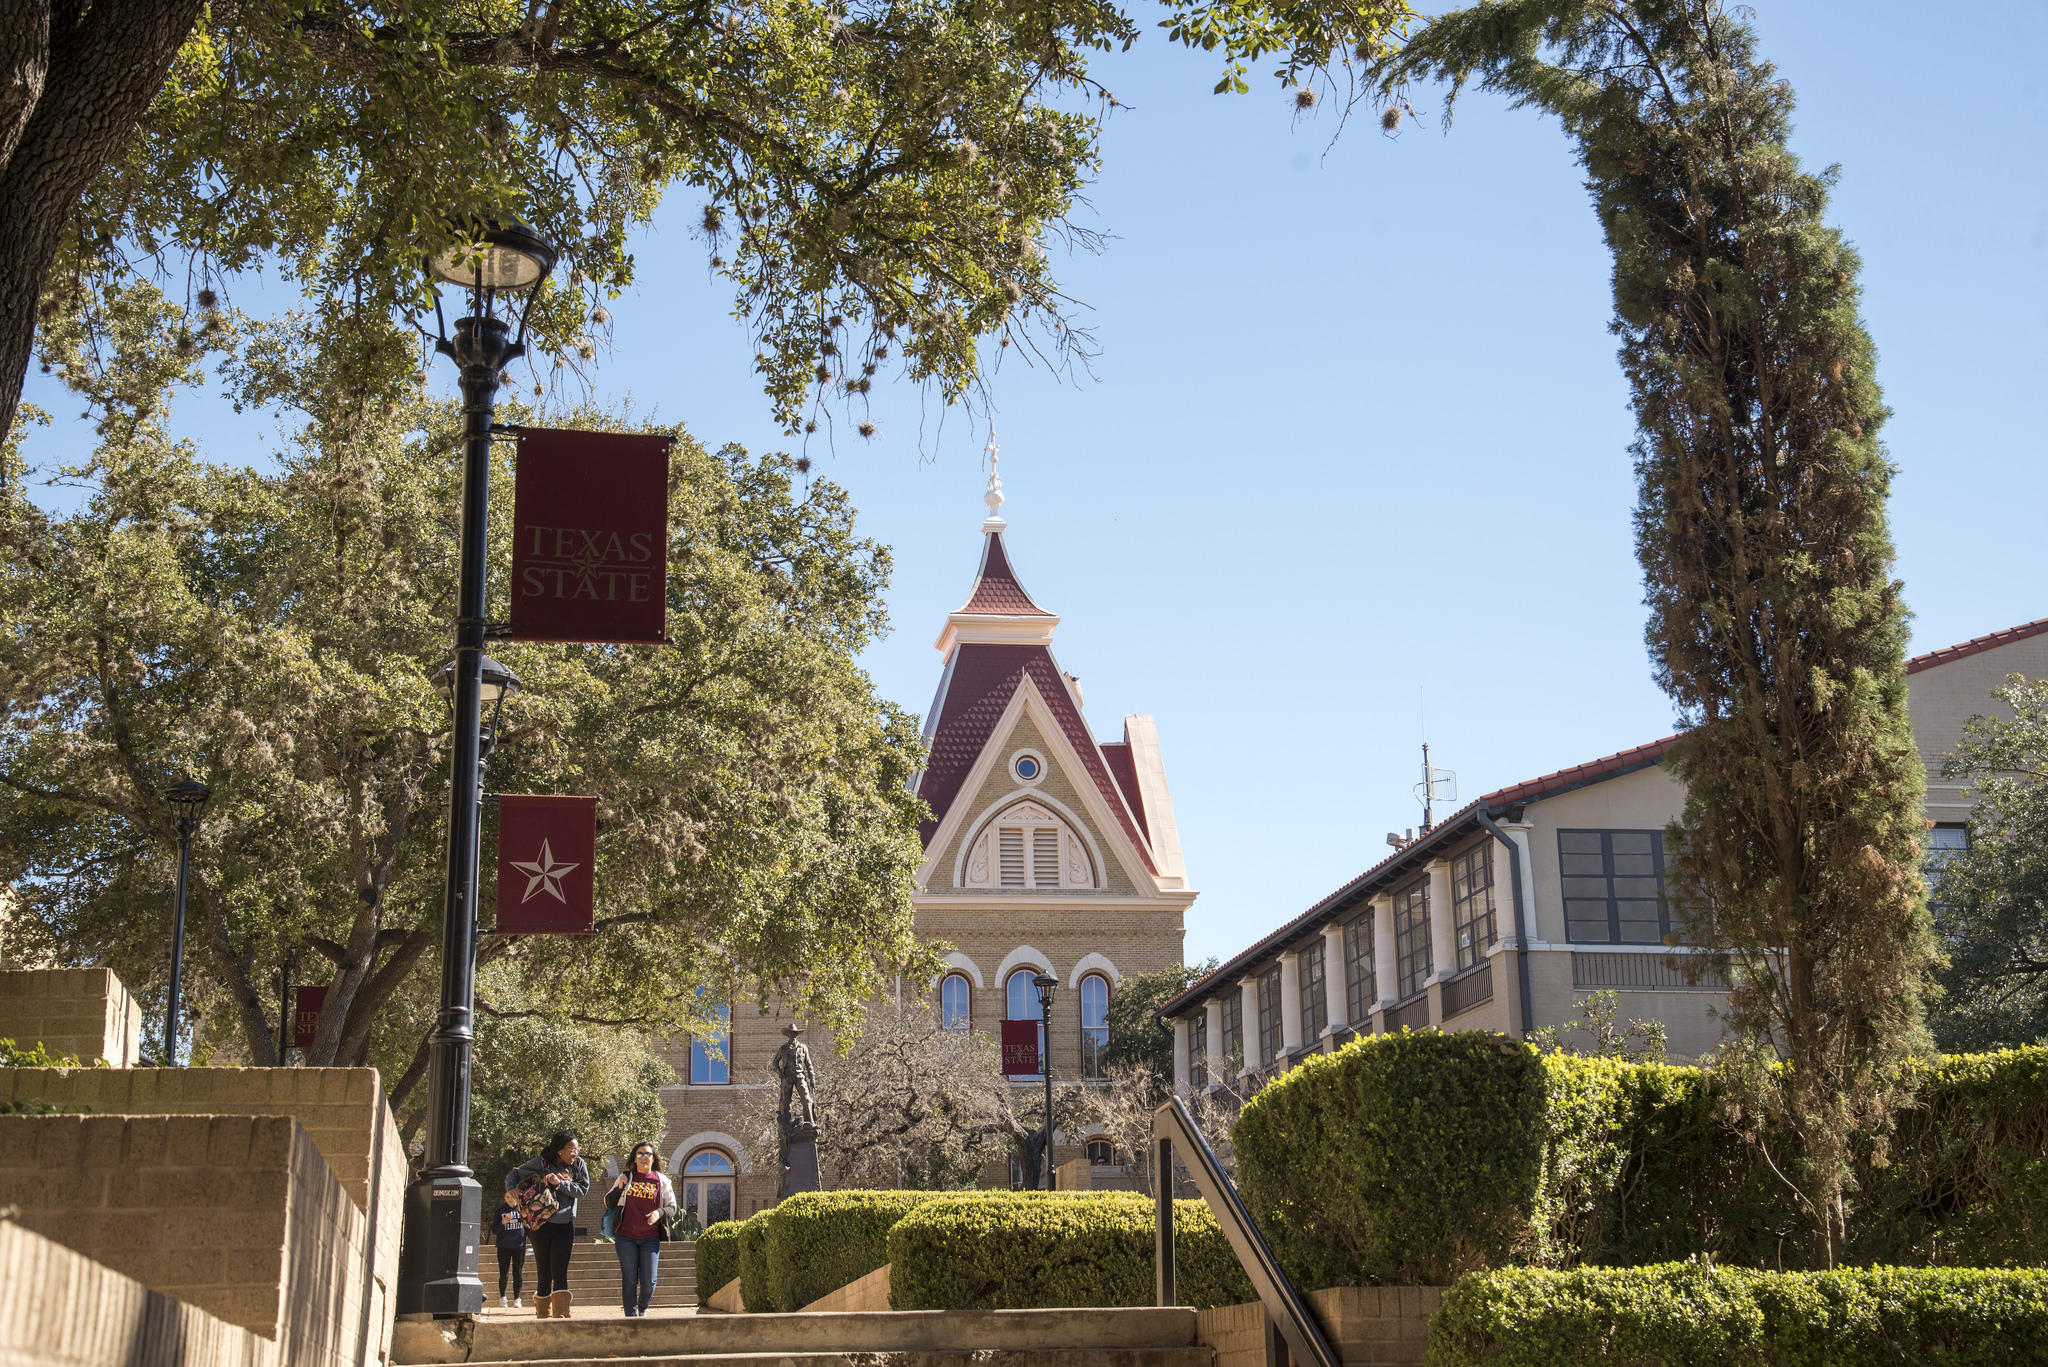 texas state seeks to diffuse tension after a year of racial